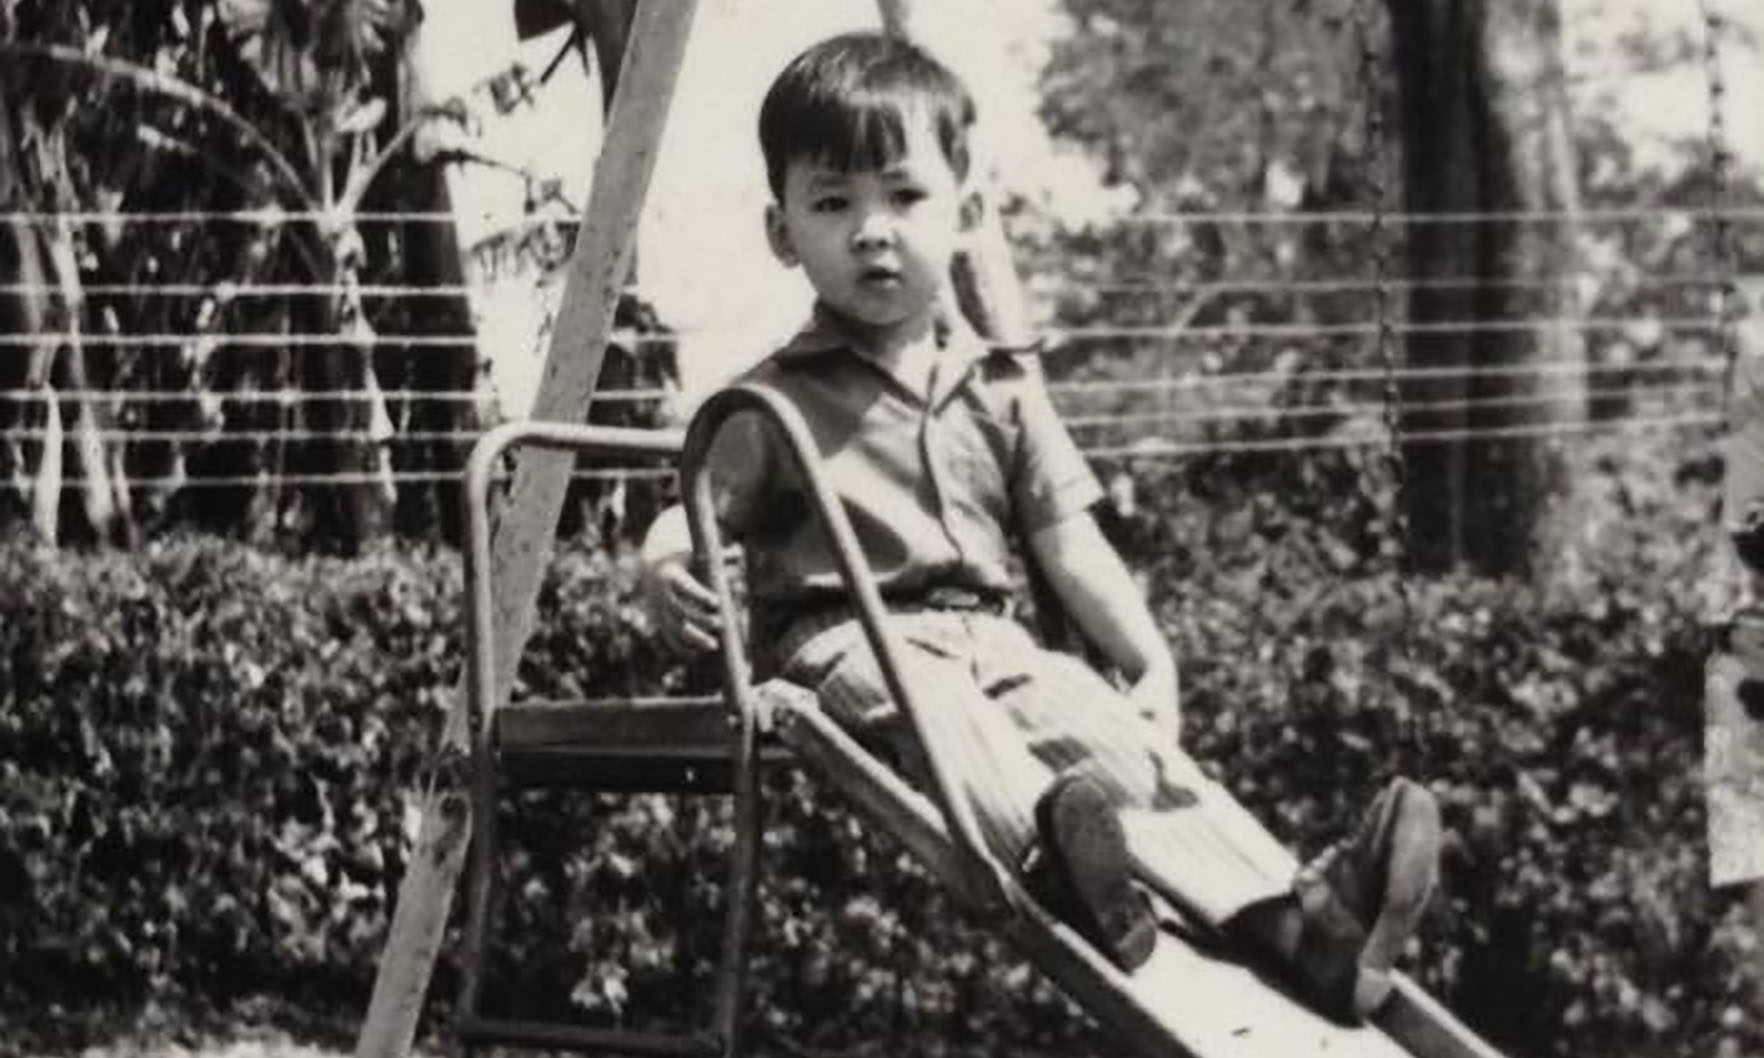 Nguyen as a child in Ban Me Thuot, circa 1974